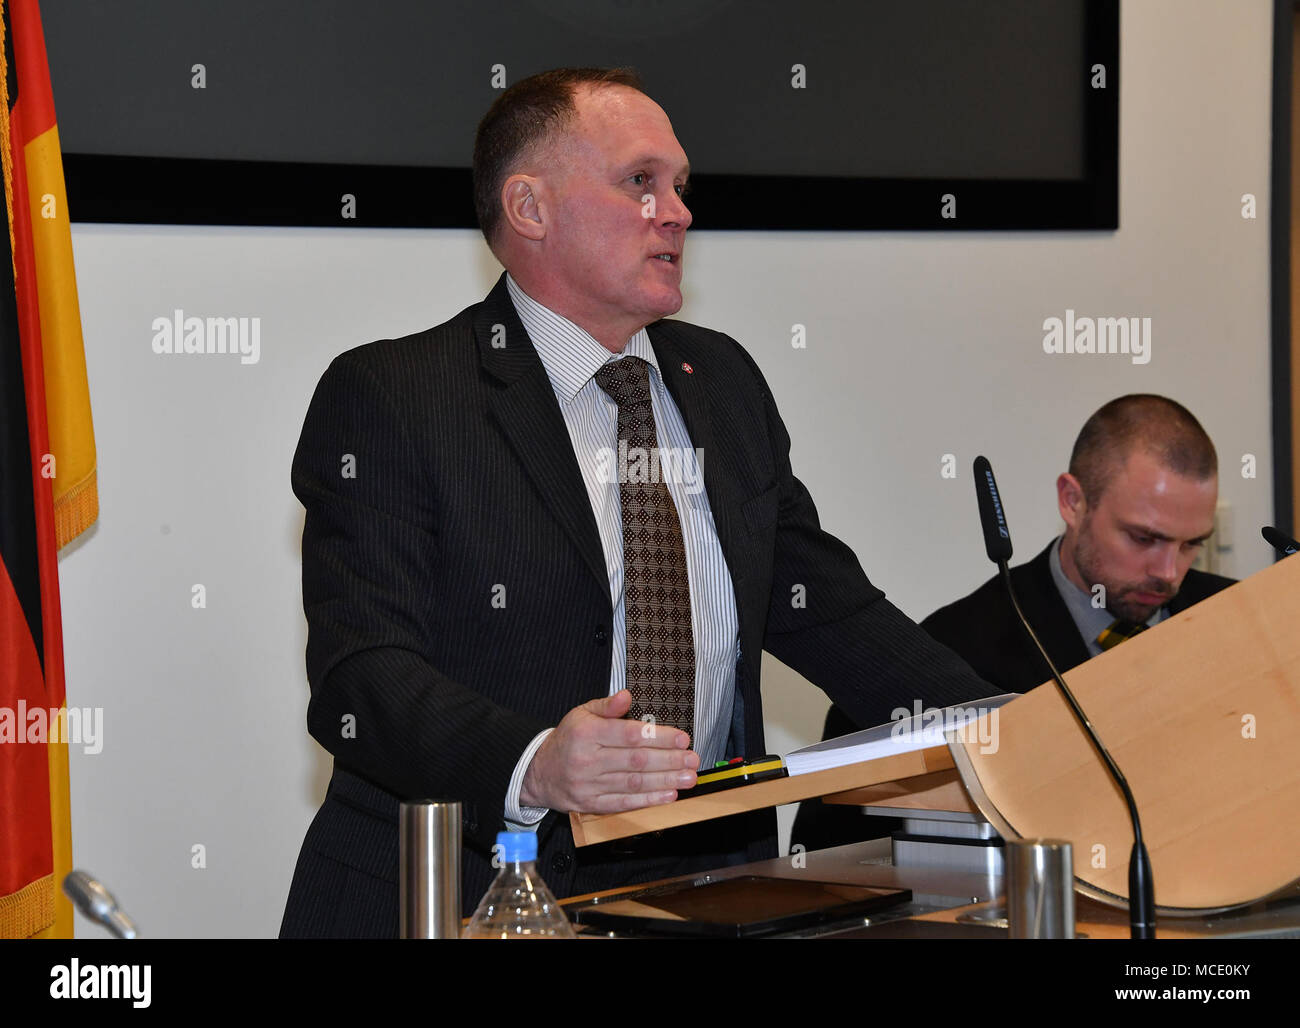 Retired U.S. Marine Corps Col. James Howcroft, director of the Program on Terrorism and Security Studies, introduces Special Agent Thomas F. O'Connor, with the U.S. Federal Bureau of Investigation's Joint Terrorism Task Force, before the panel discussion on right-wing terrorism during the PTSS Feb. 26 at the George C. Marshall European Center for Security Studies in Garmisch-Partenkirchen. (Marshall Center photo by Karl-Heinz Wedhorn) Stock Photo